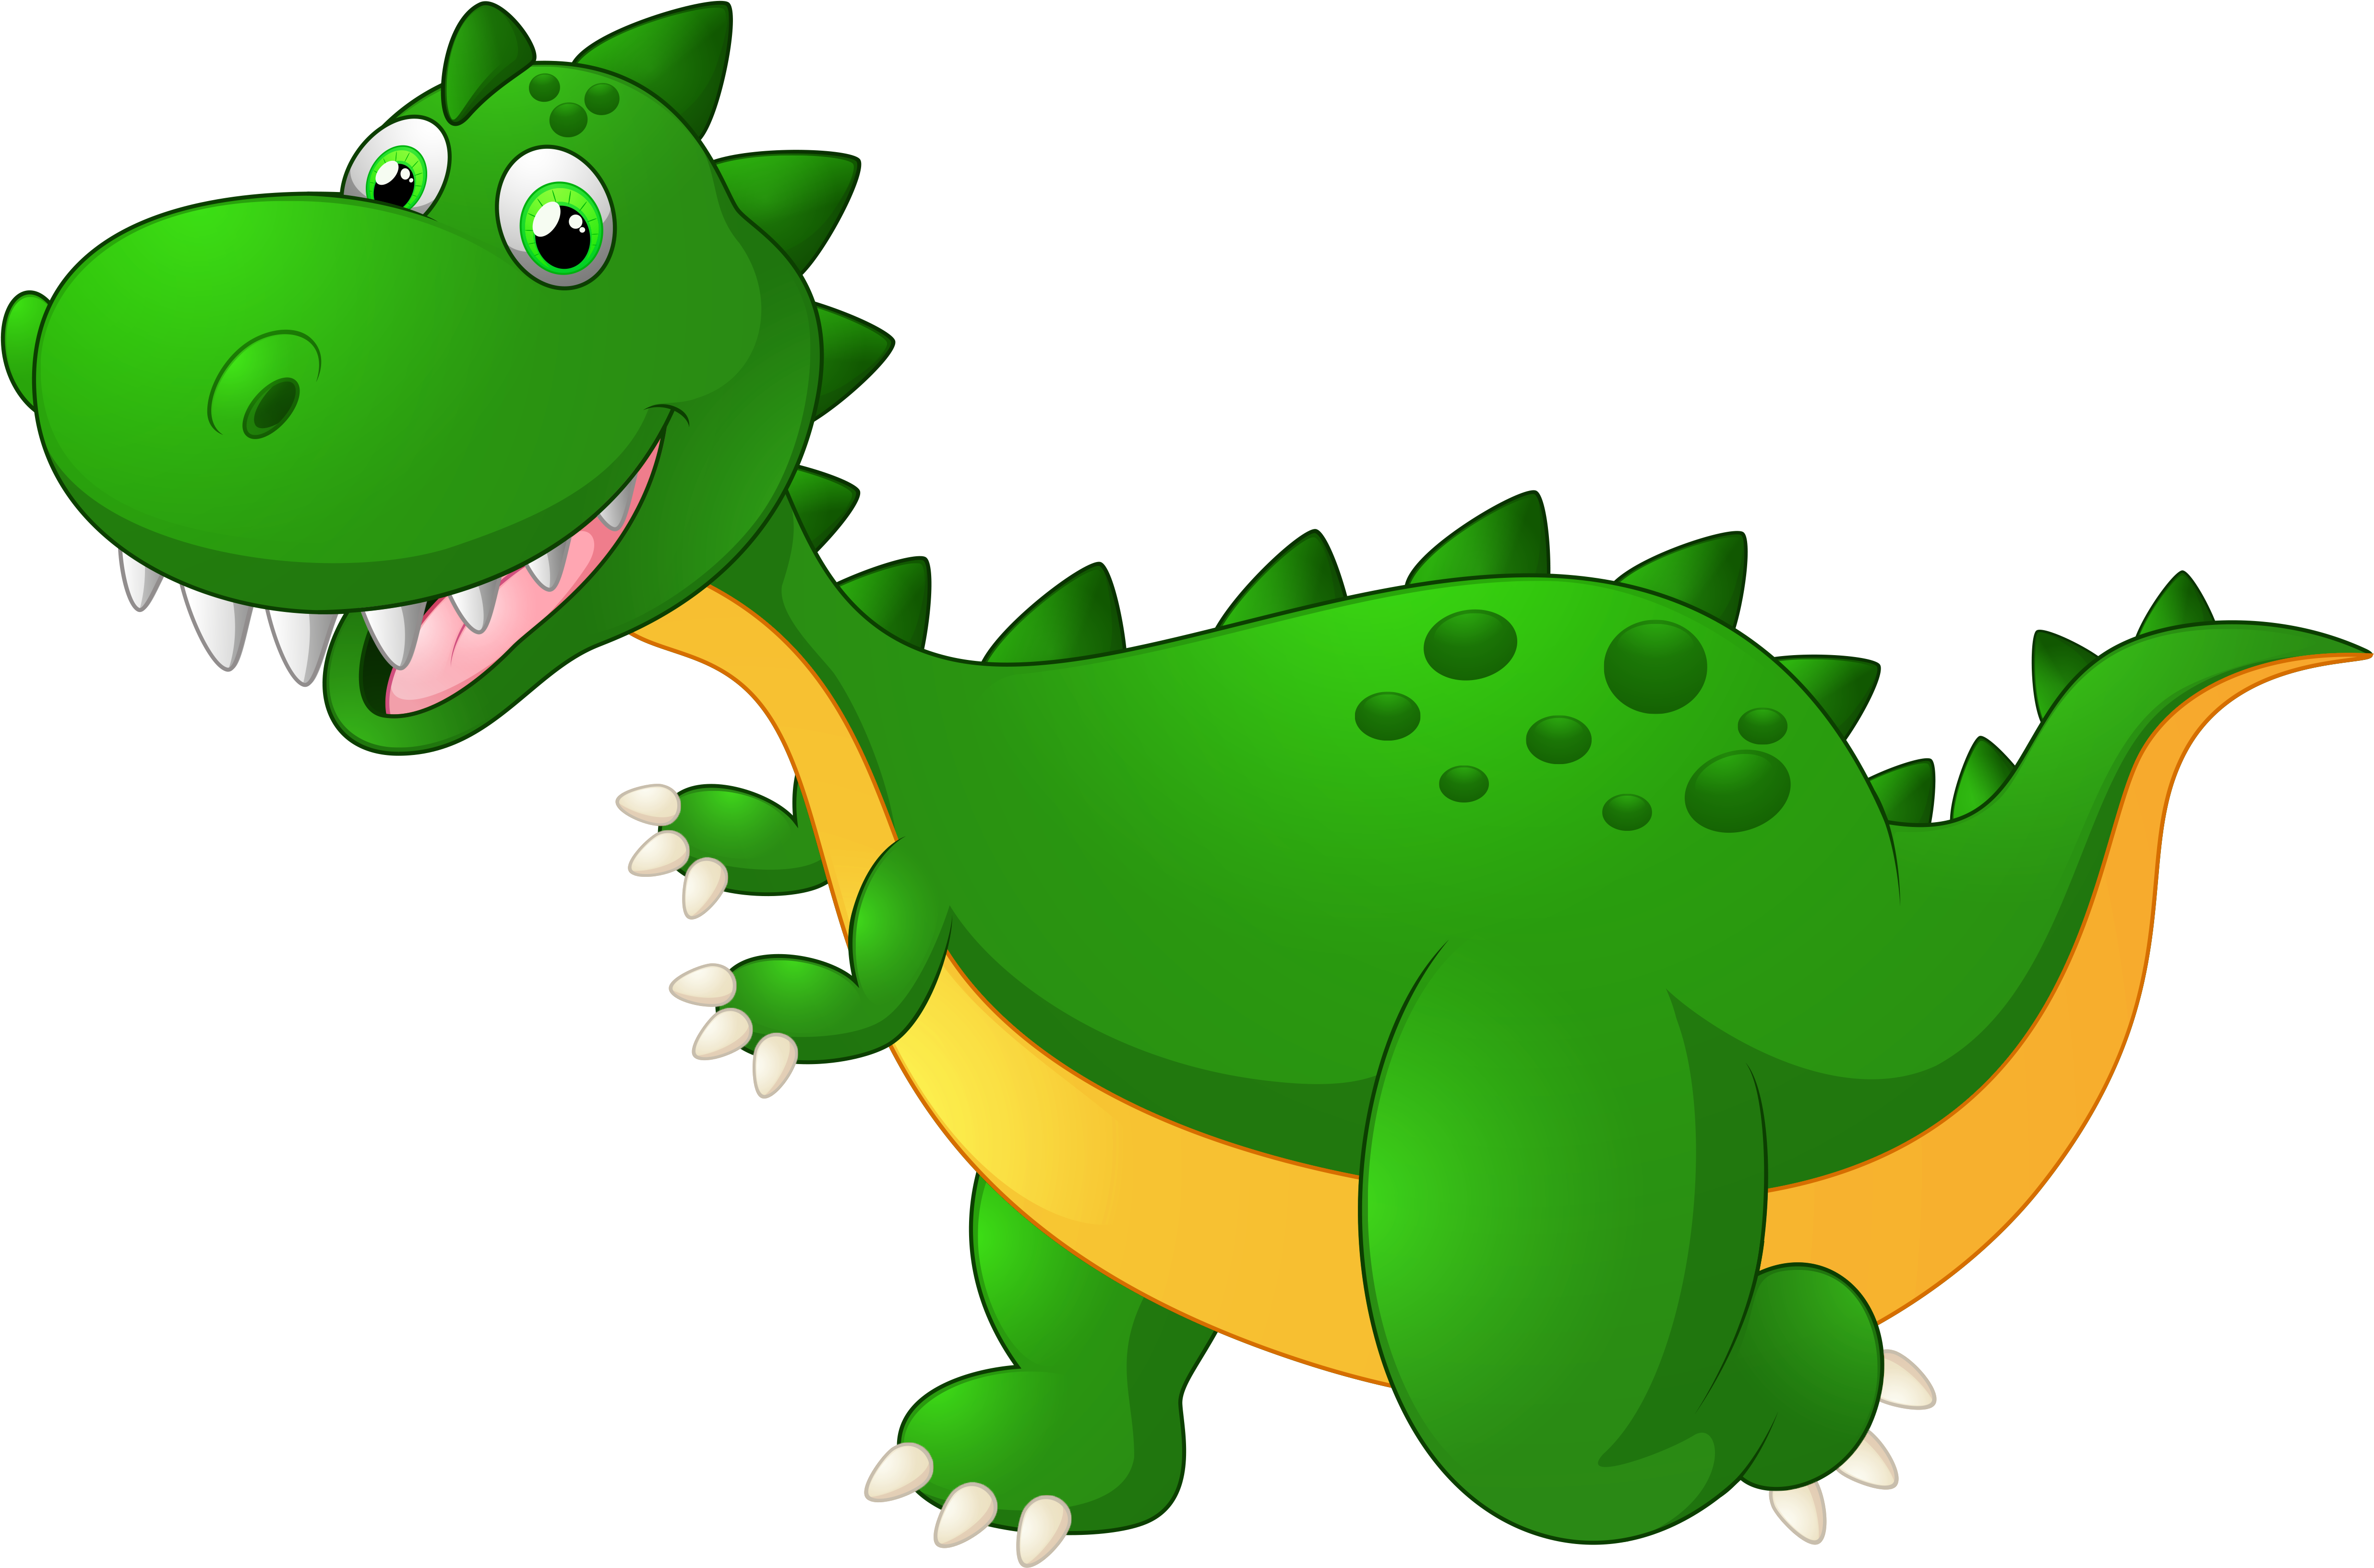 Cute Dinosaur Png Graphic Royalty Free Stock - Transparent Background Dinosaur Clipart (5157x3318), Png Download